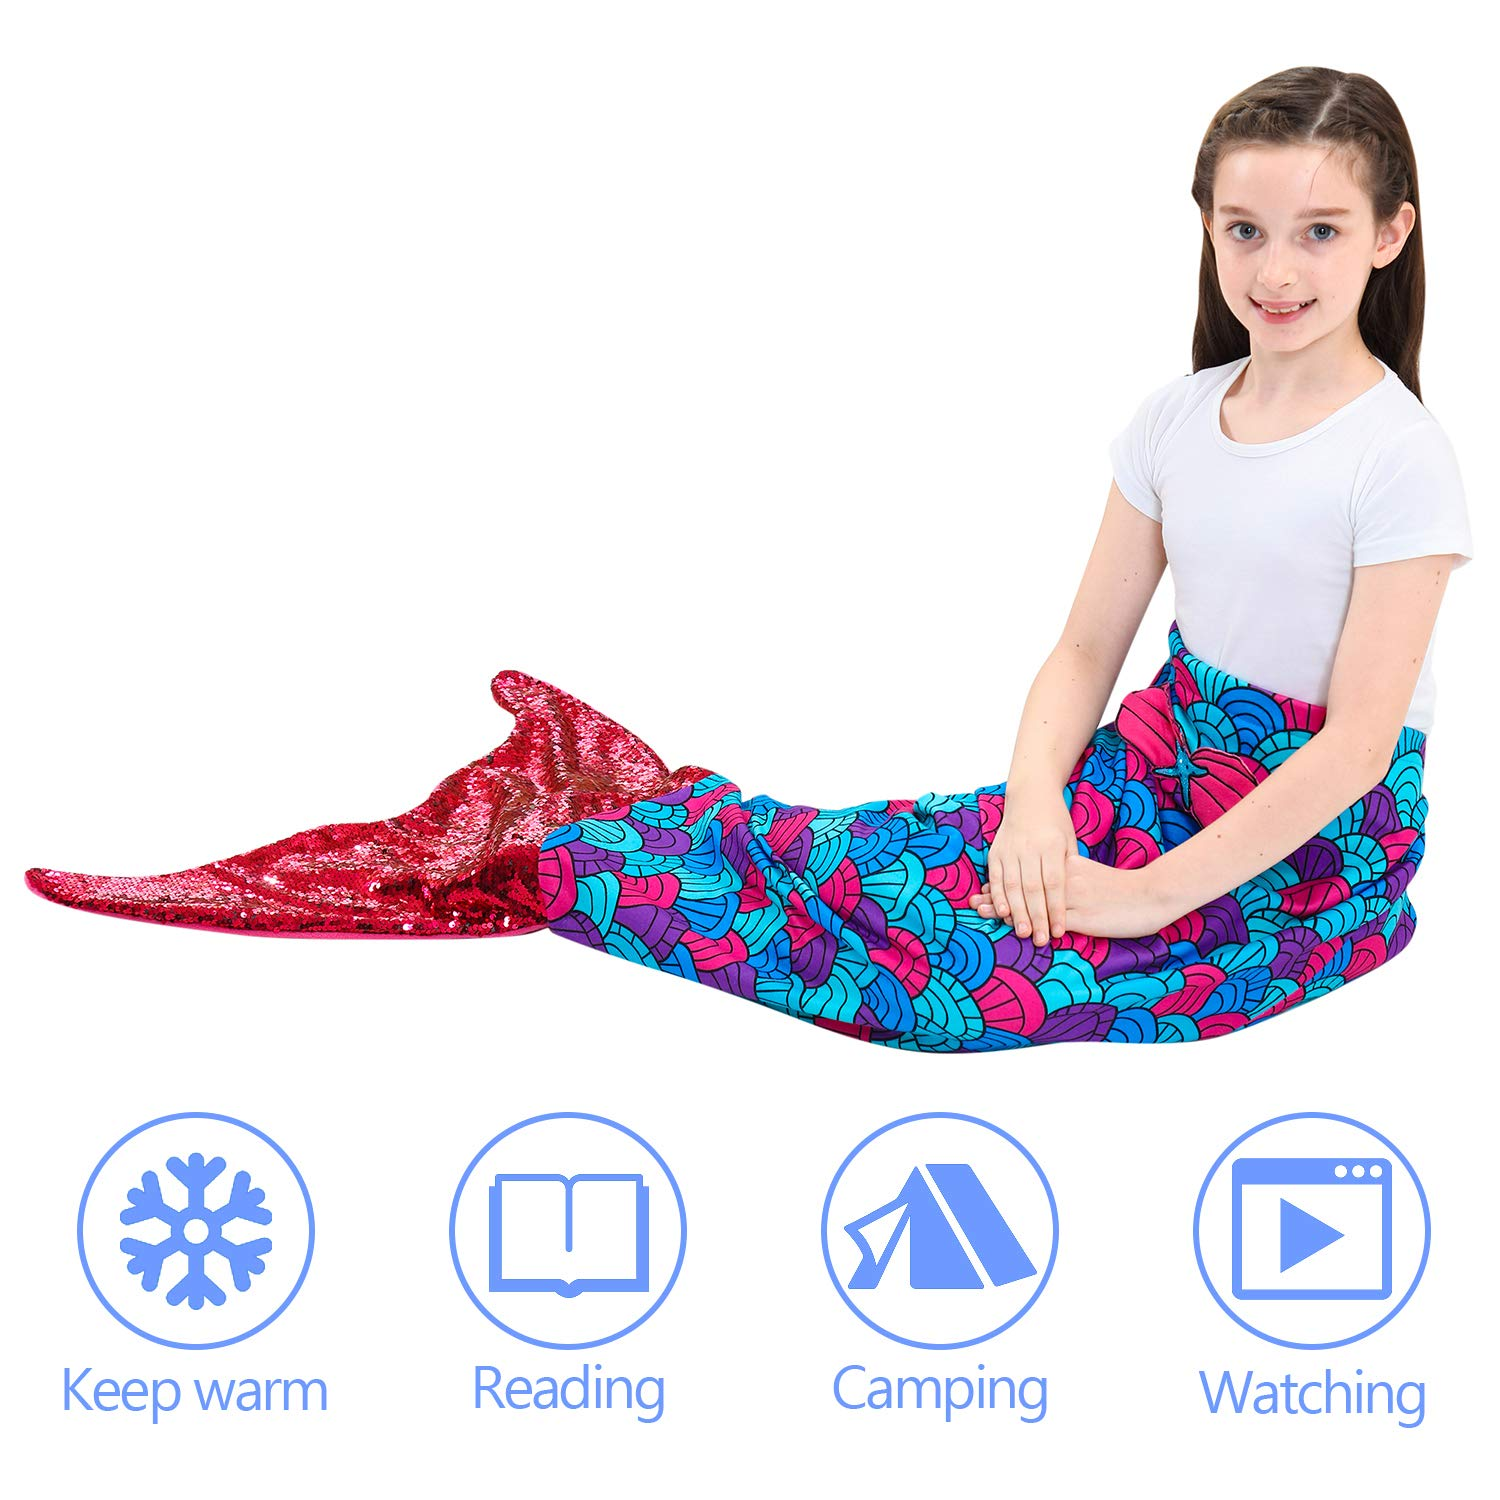 Mermaid Tail Blanket for Girls Soft Flannel Scale Pattern All Season Sleeping Blankets Bags Kids Holiday Warm Comforter Air Condition Sofa,Home,Travel,Birthday Gifts for 3-14Y